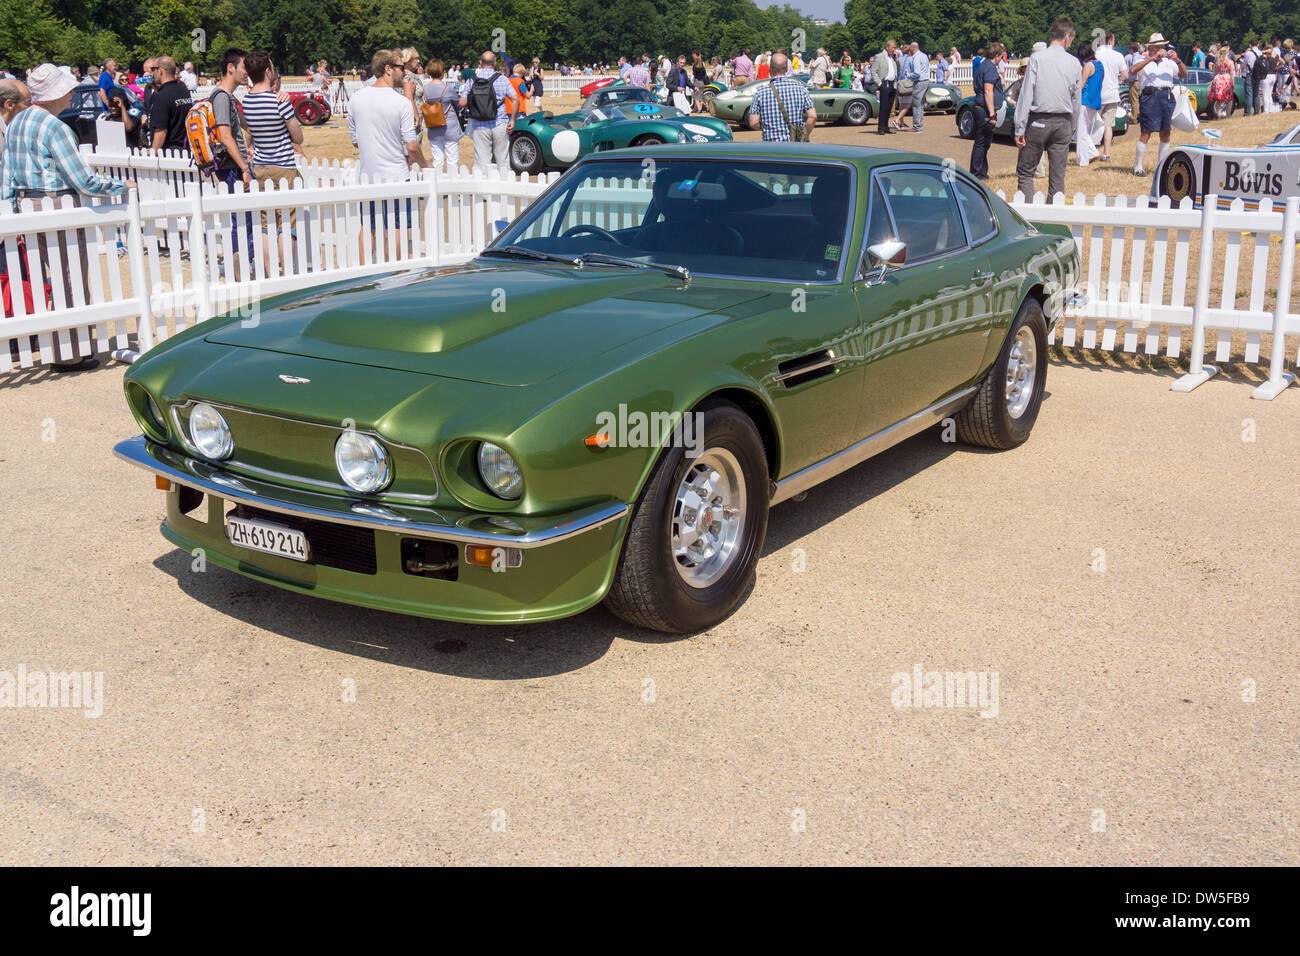 Aston Martin V8 VANTAGE (1977-1989), Aston Martin Timeline, Centenary Celebration 2013, 100 years Aston Martin, Stock Photo